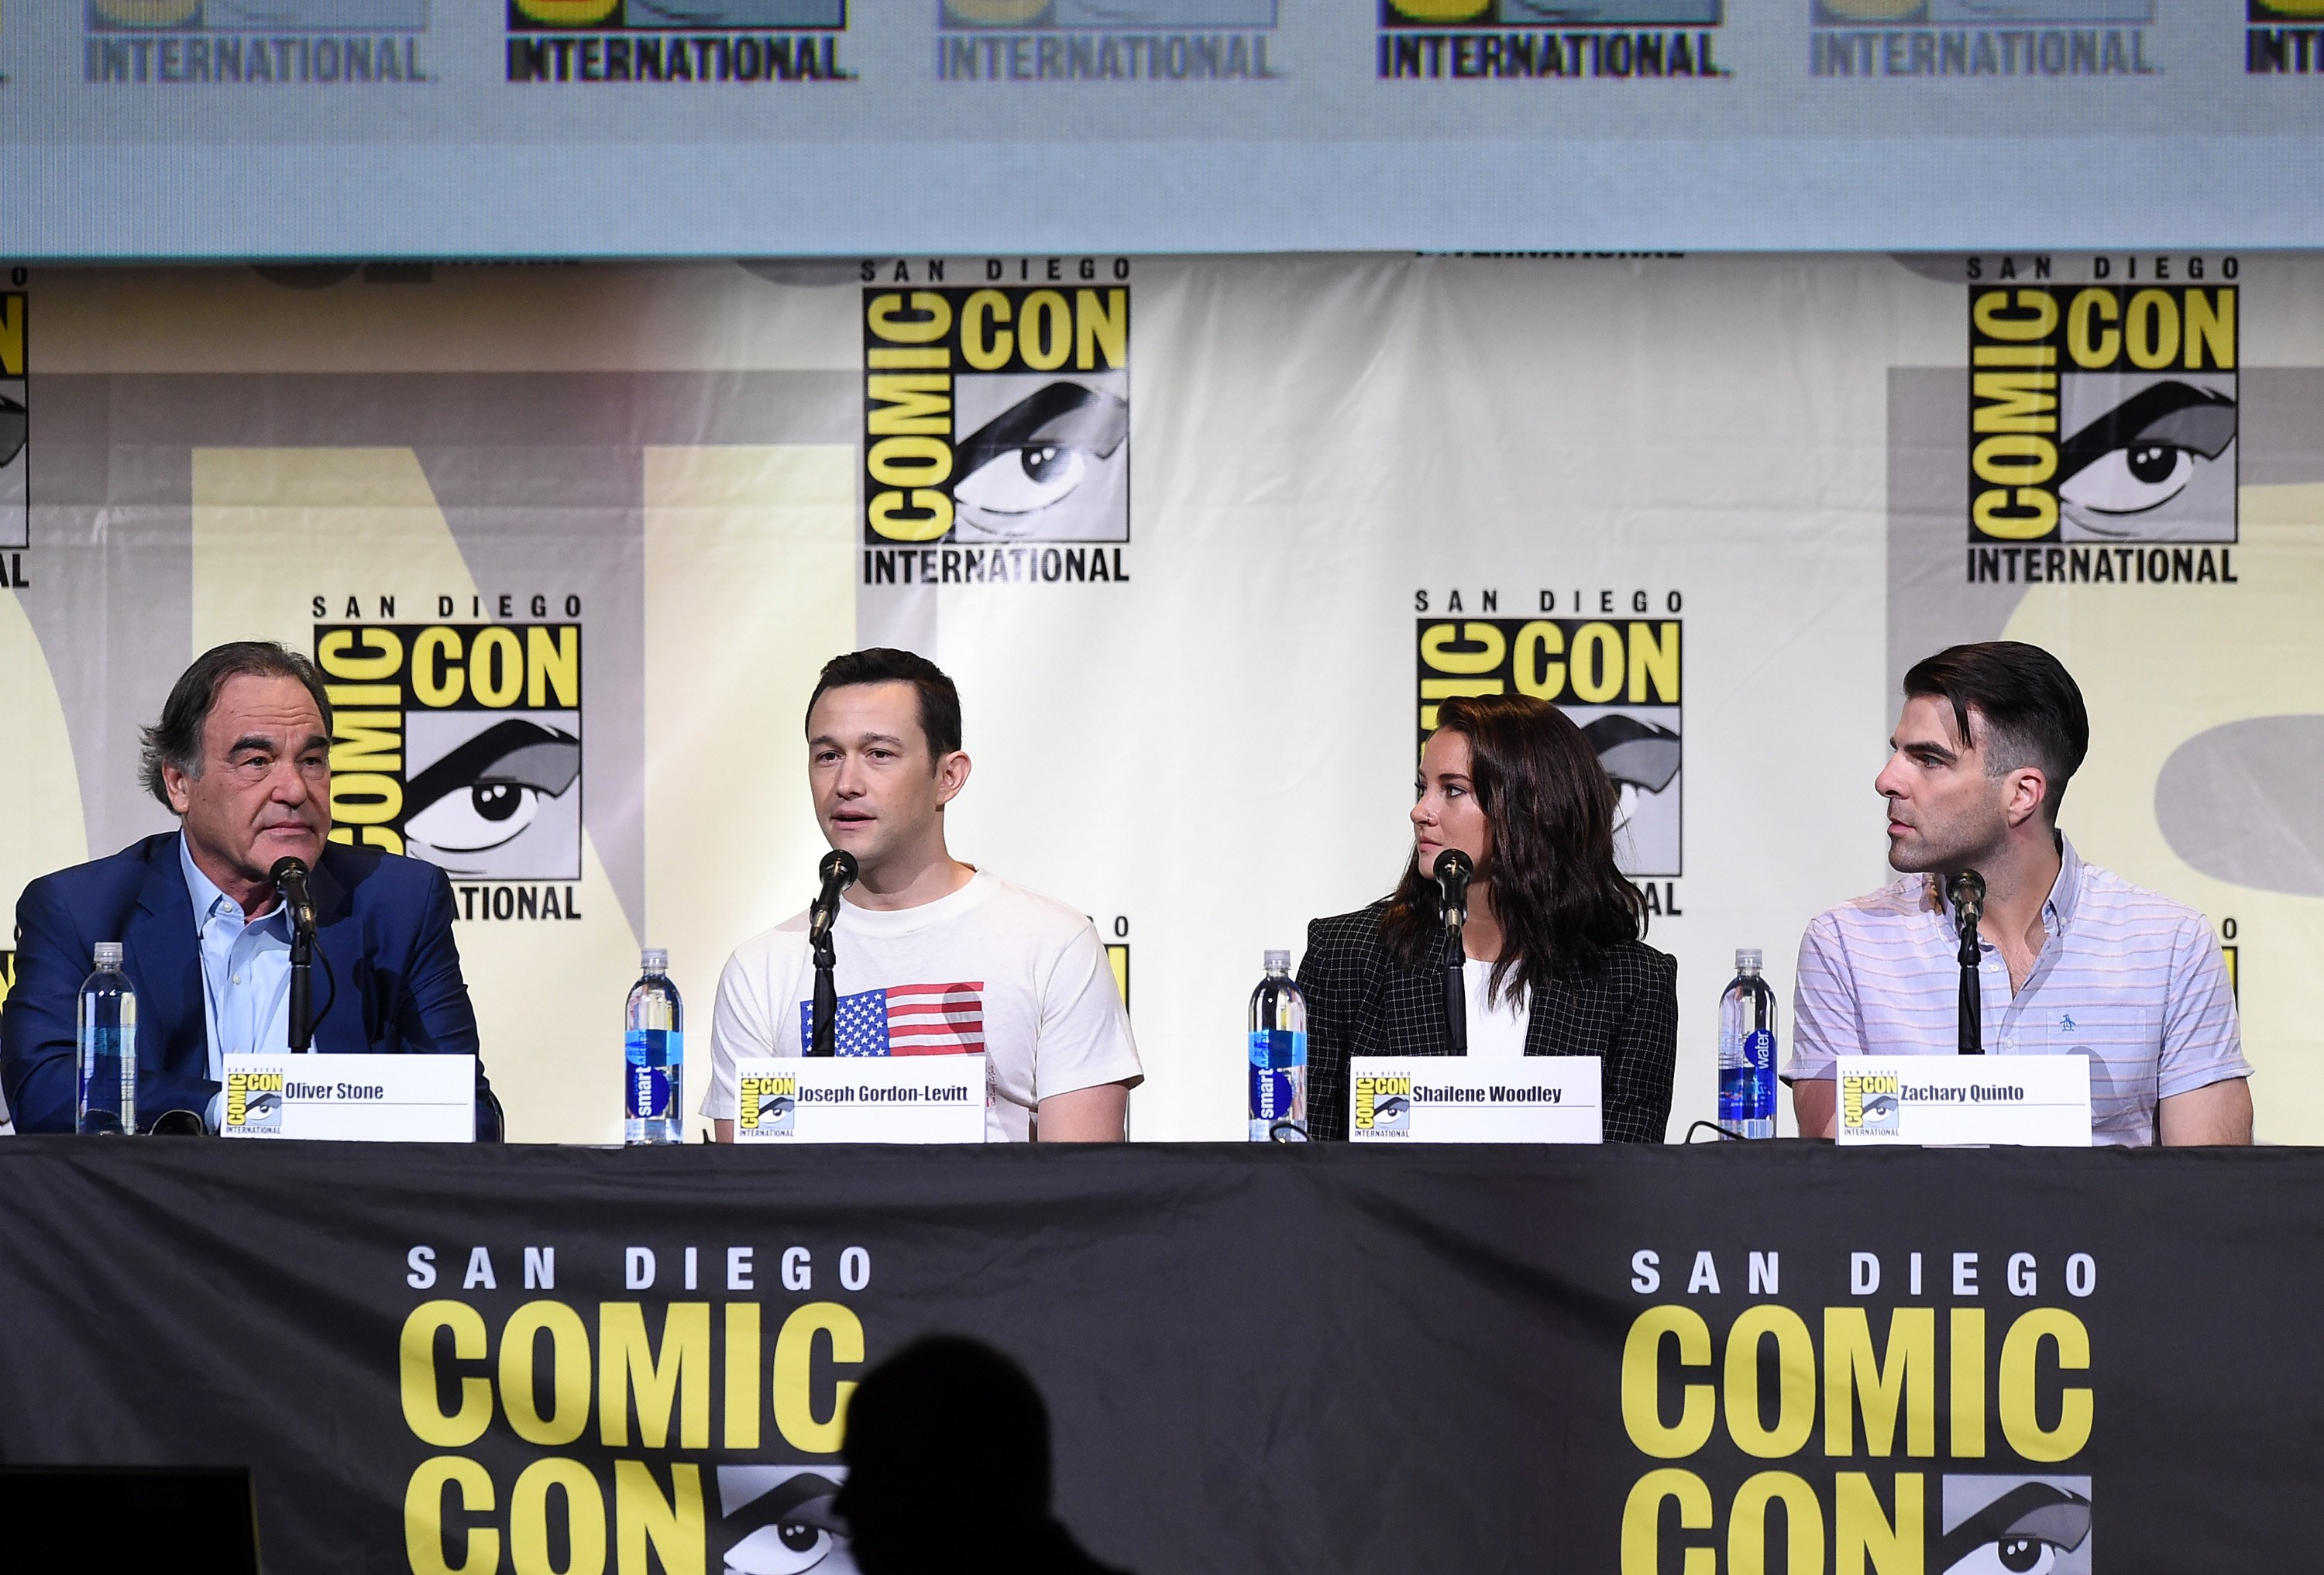 Oliver Stone, Joseph Gordon-Levitt, Shailene Woodley and Zachary Quinto attend the  Snowden  panel during  Comic-Con International 2016 at San Diego Convention Center, on July 21, 2016.